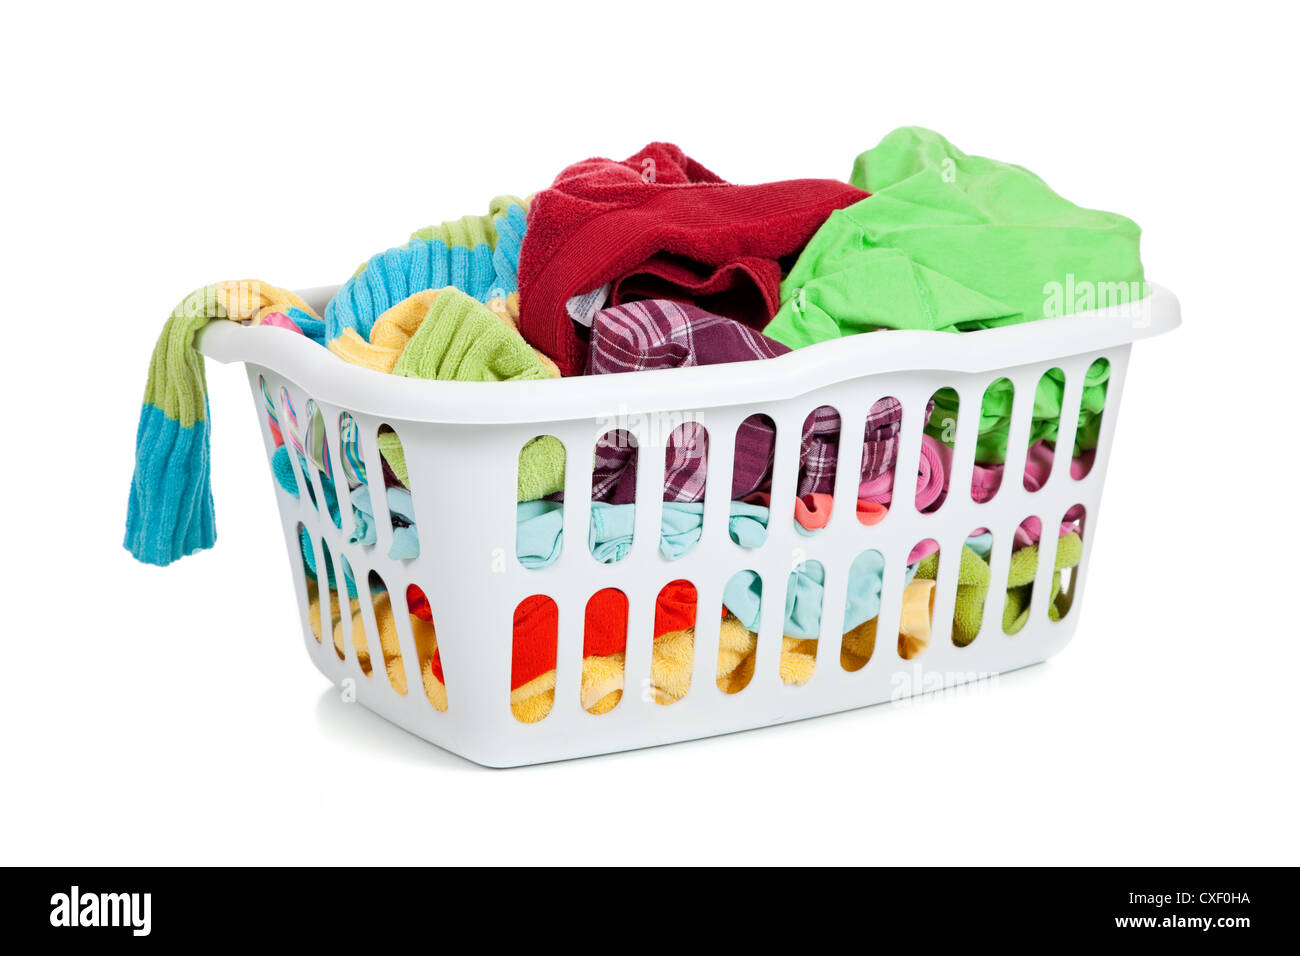 Dirty Laundry Baskets White Plastic Laundry Basket Full Of Dirty Clothes Stock